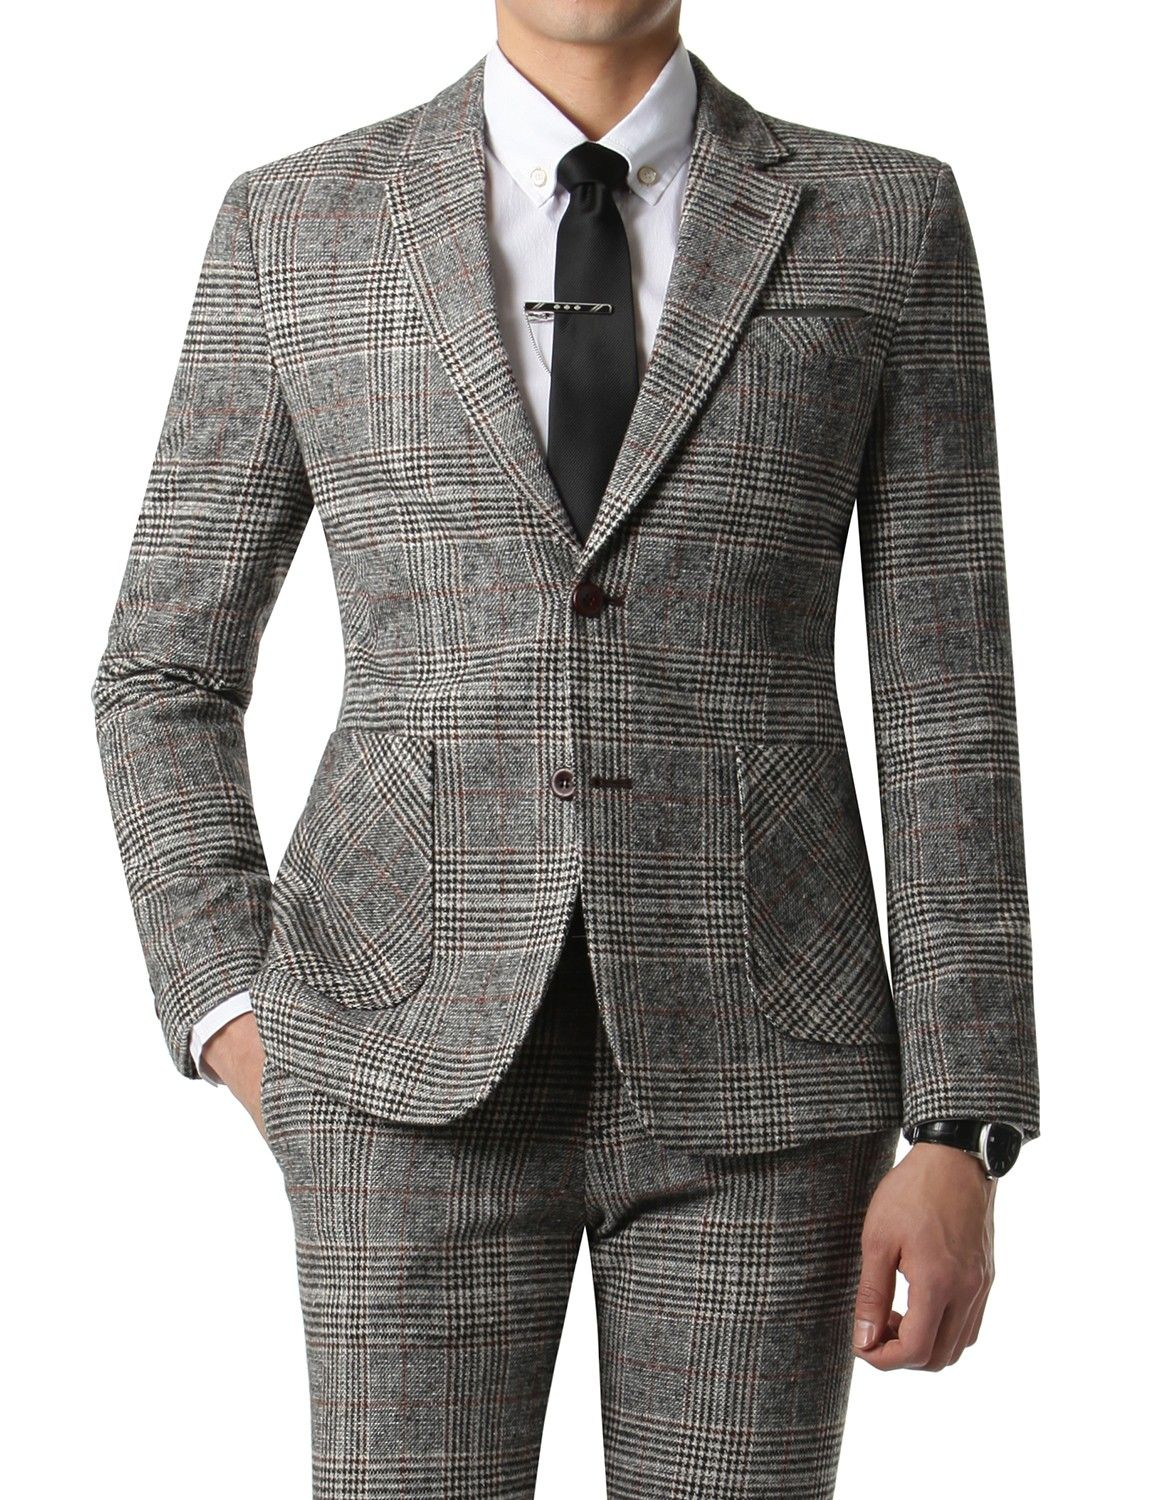 Doublju Men's 2 Button Woolen Suit Blazer Jacket Gray Plaid (KMOBL031)  #doublju